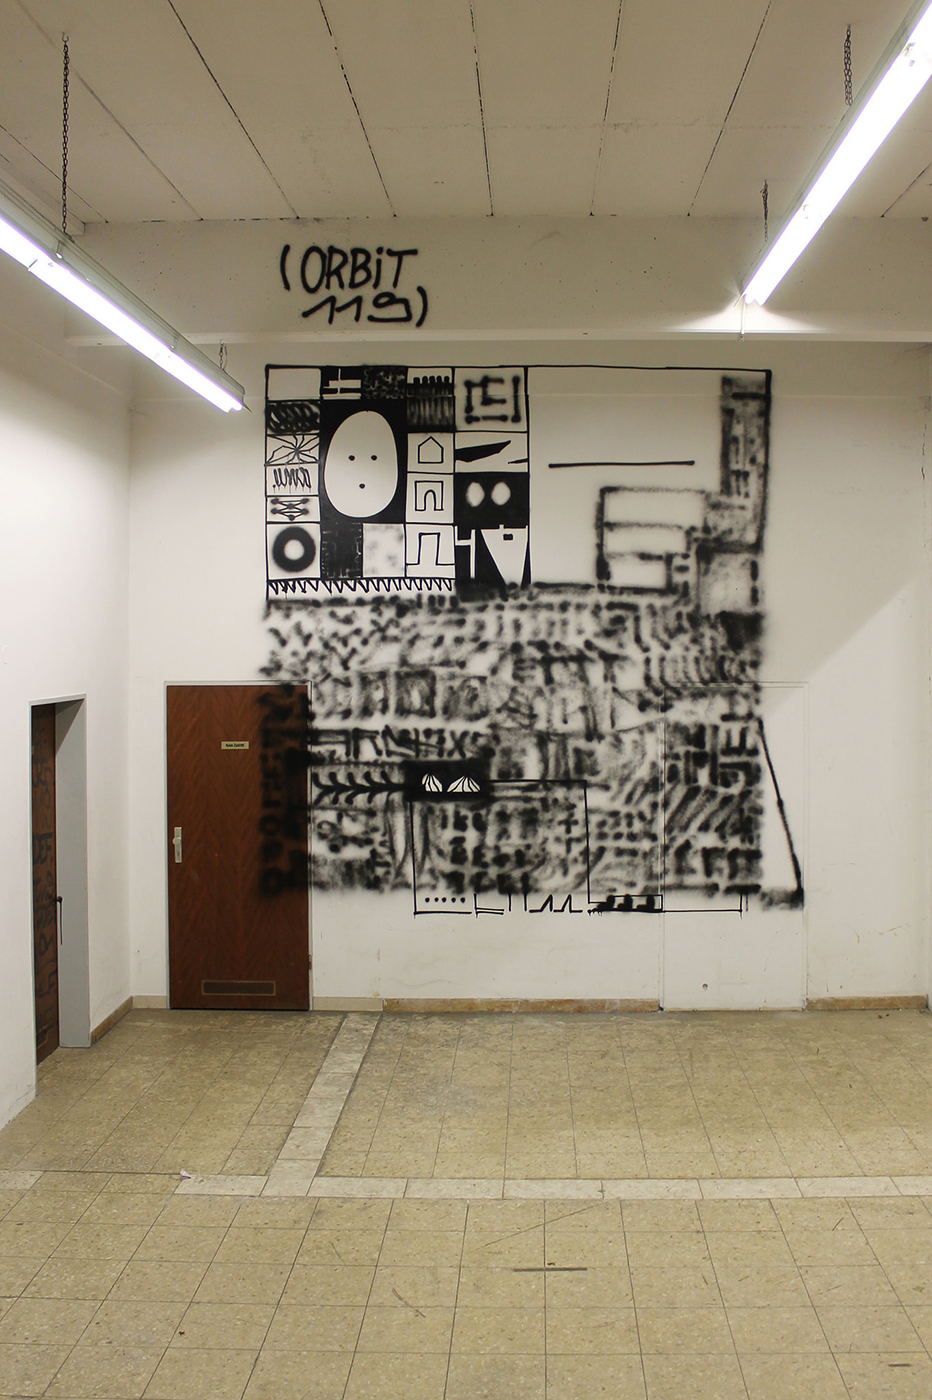 abcdef-new-murals-inside-an-abandoned-building-04